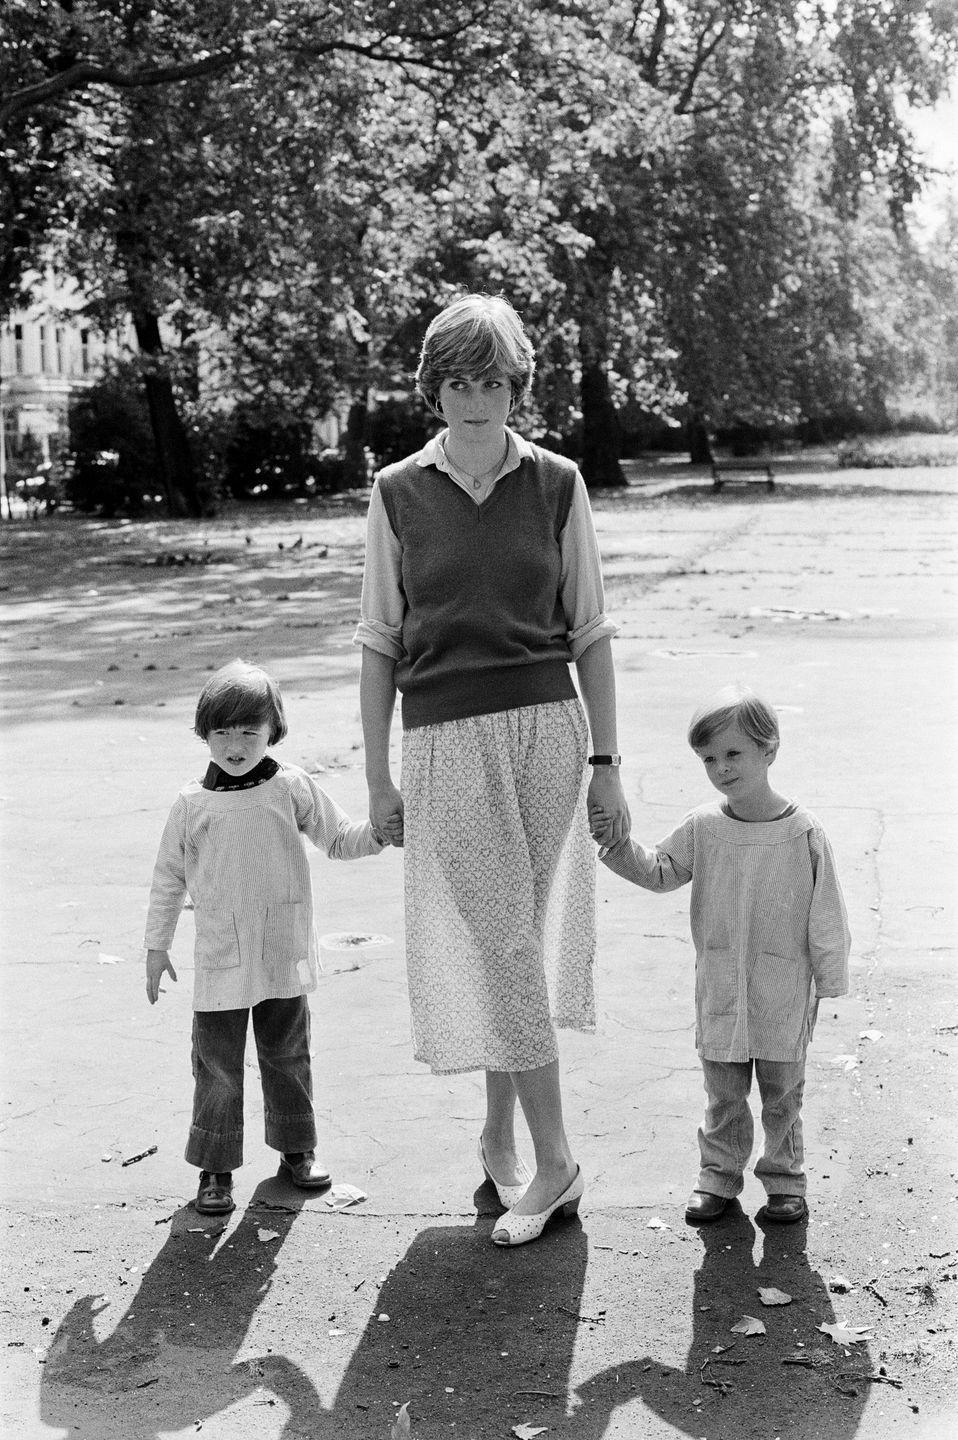 <p>Holding hands with children at the nursery school in Pimlico, London, where Diana worked as a teacher at the time.</p>